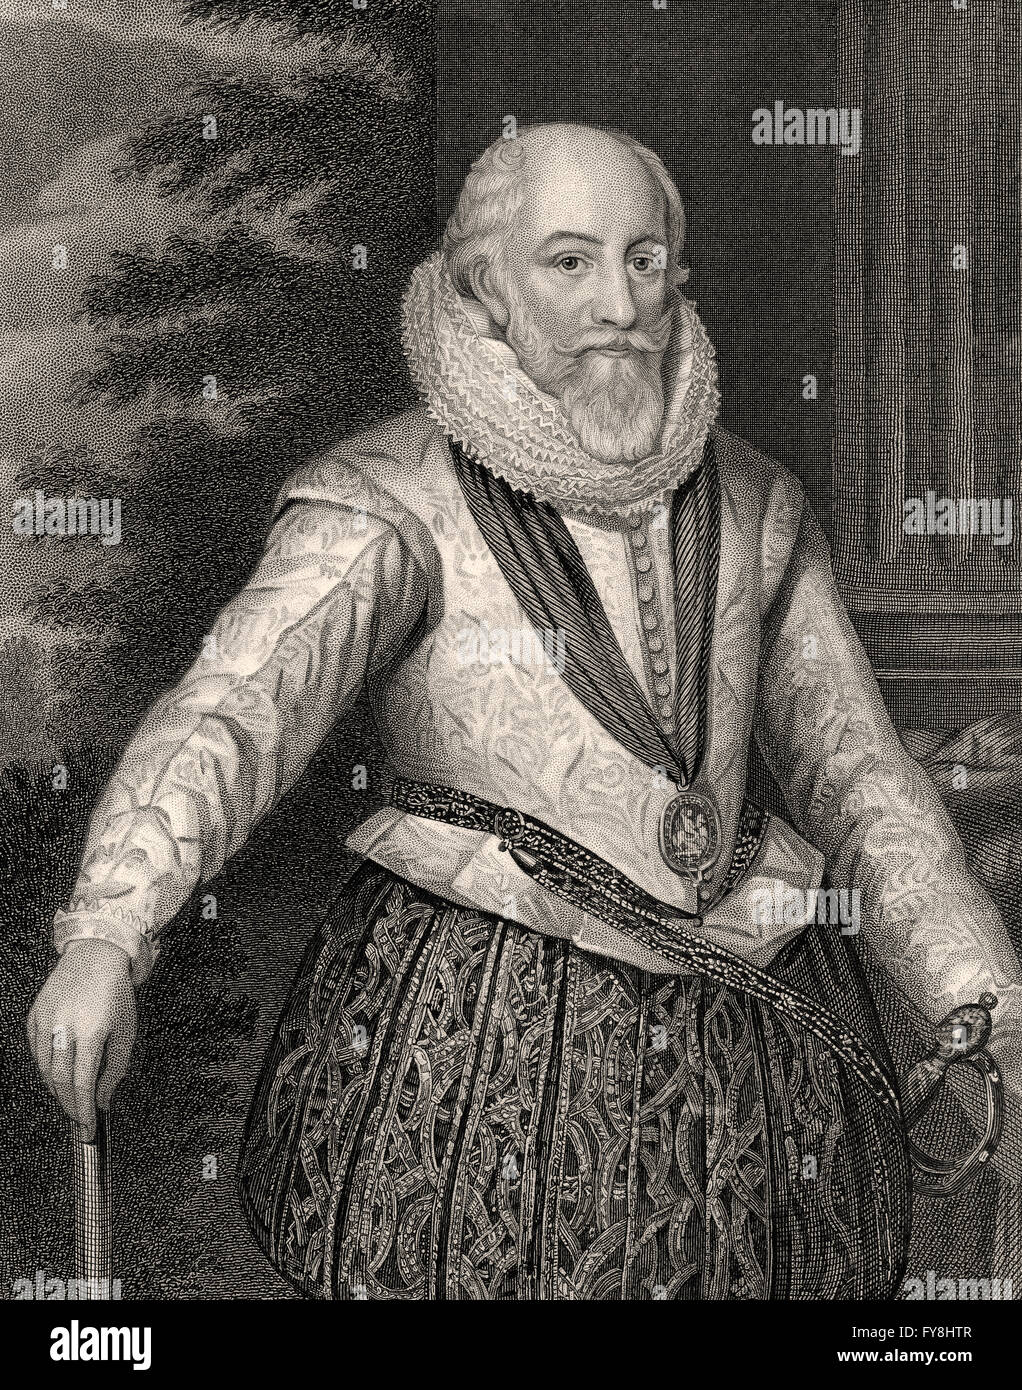 Edward Somerset, 4th Earl of Worcester, c. 1550-1628, an English aristocrat and an important advisor to King James - Stock Image